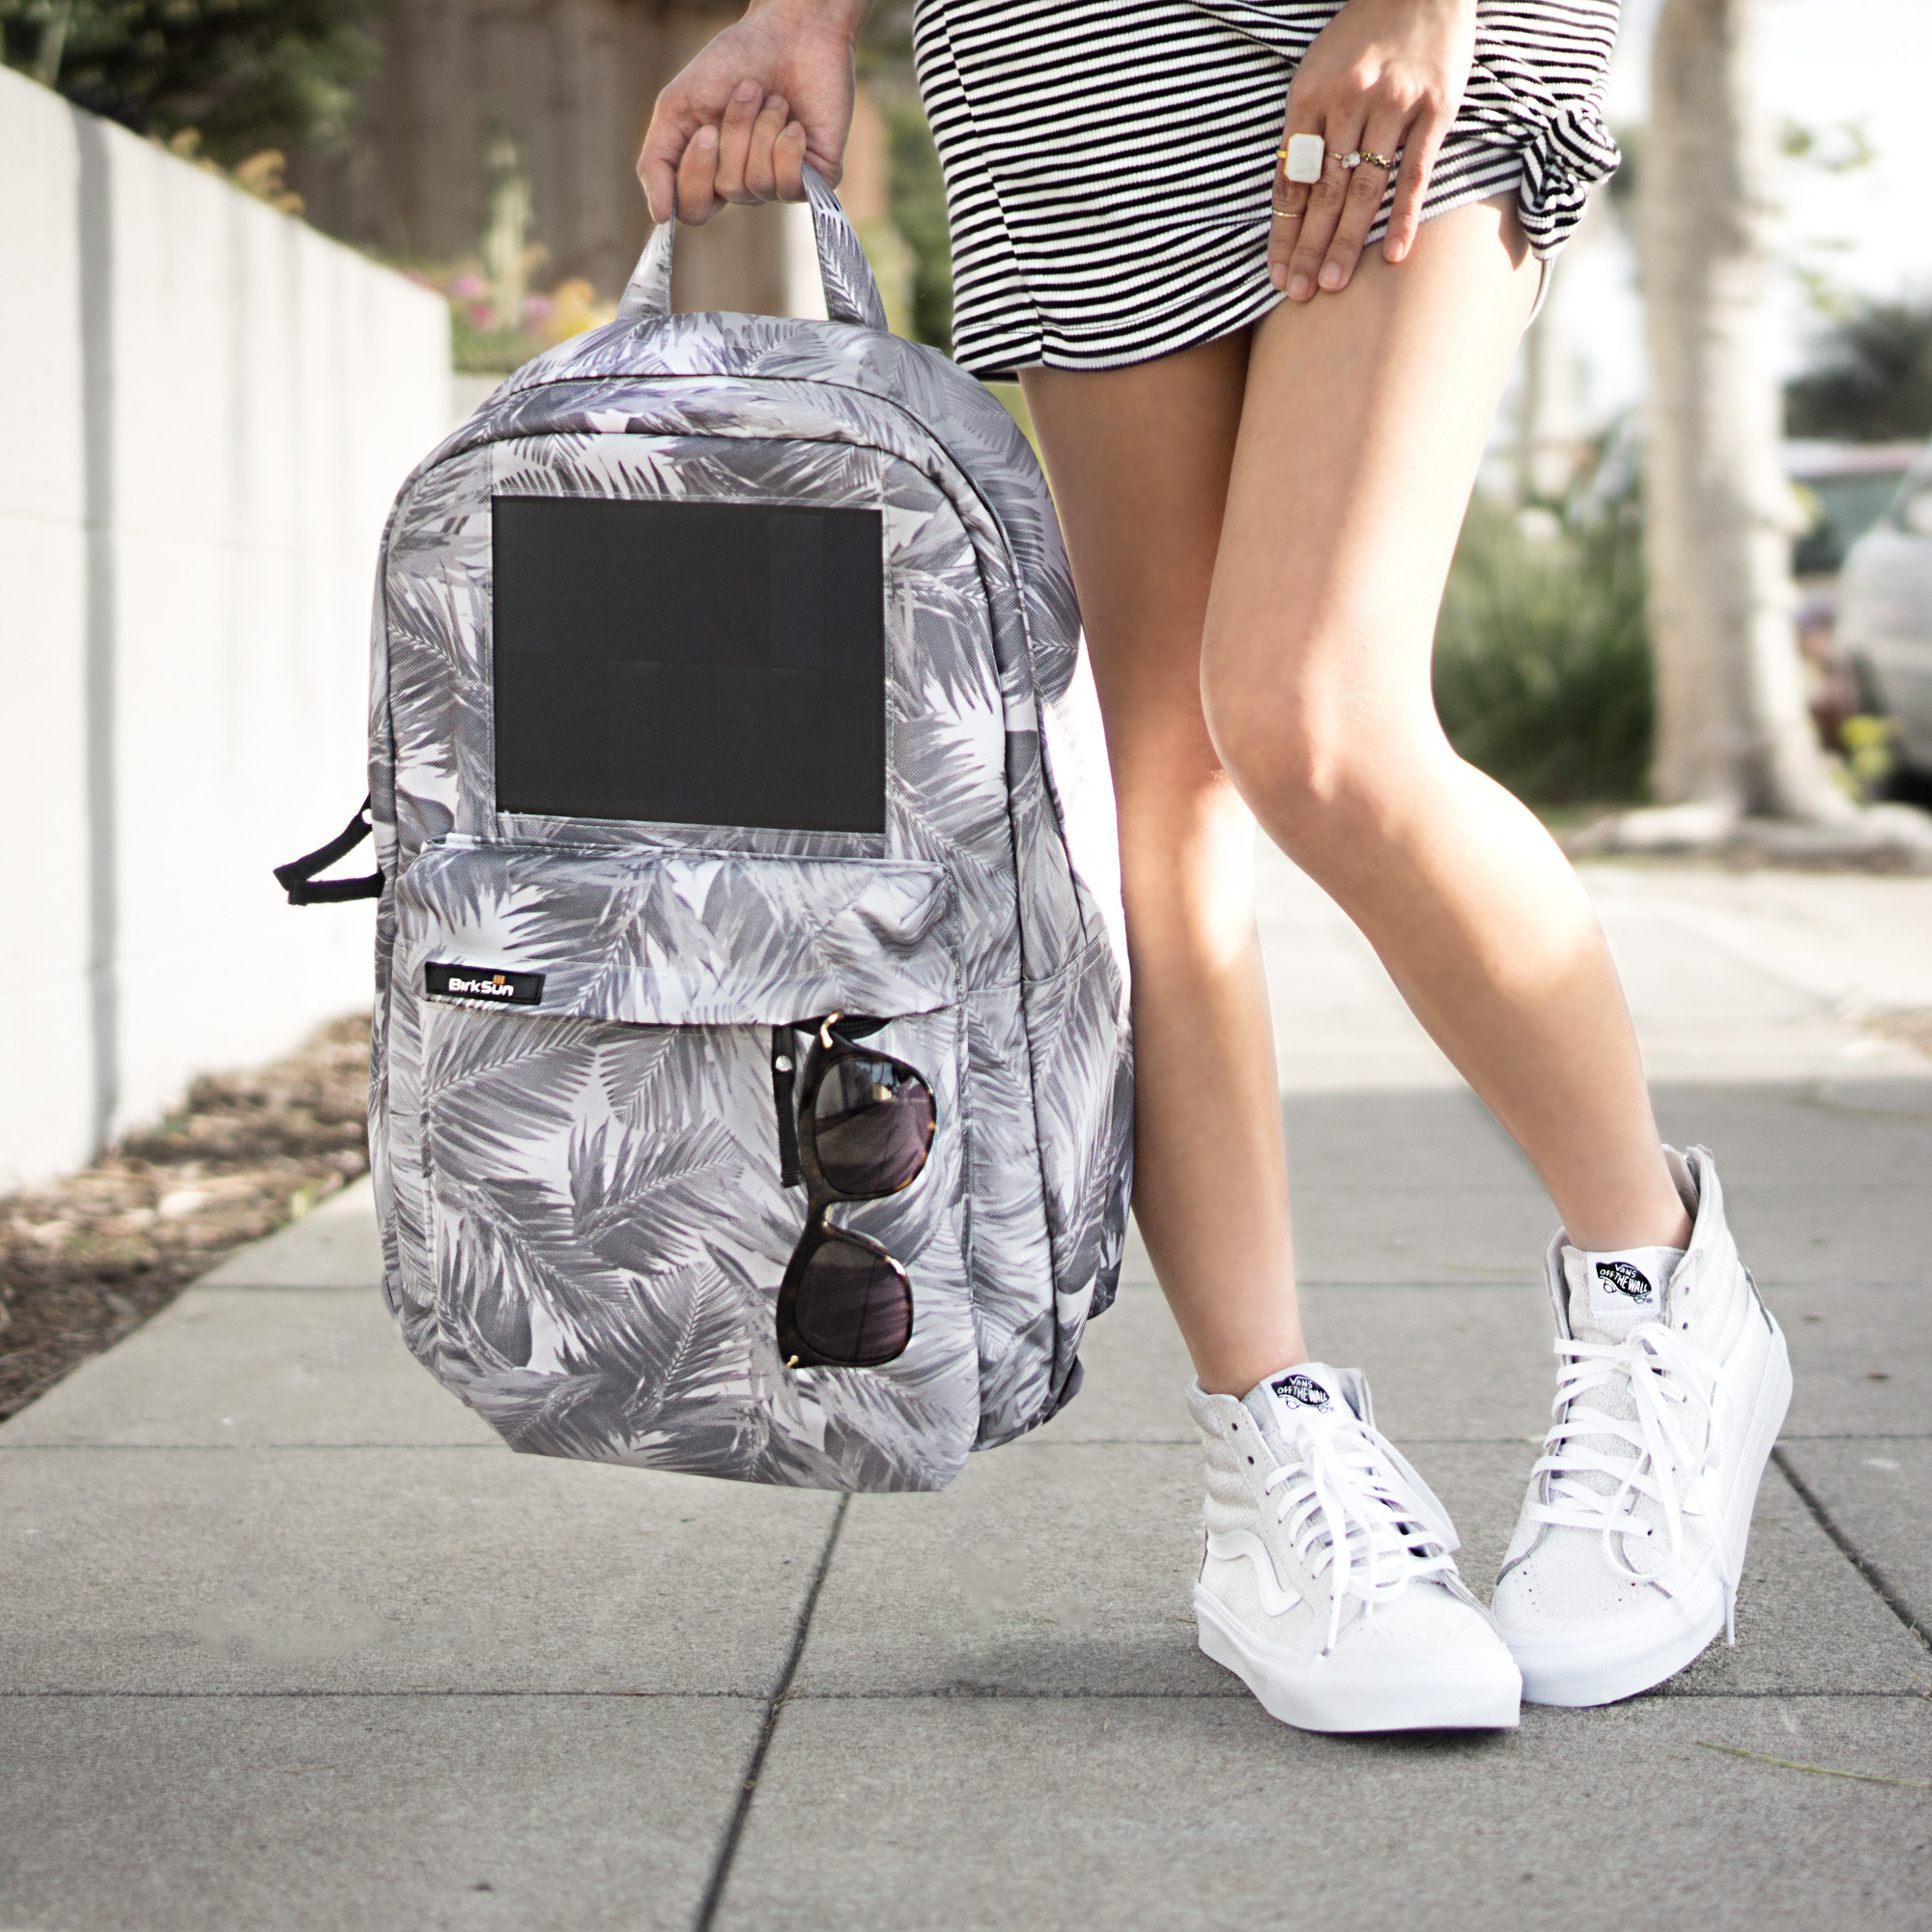 reckless-solar-backpack-vans-shoes.jpg